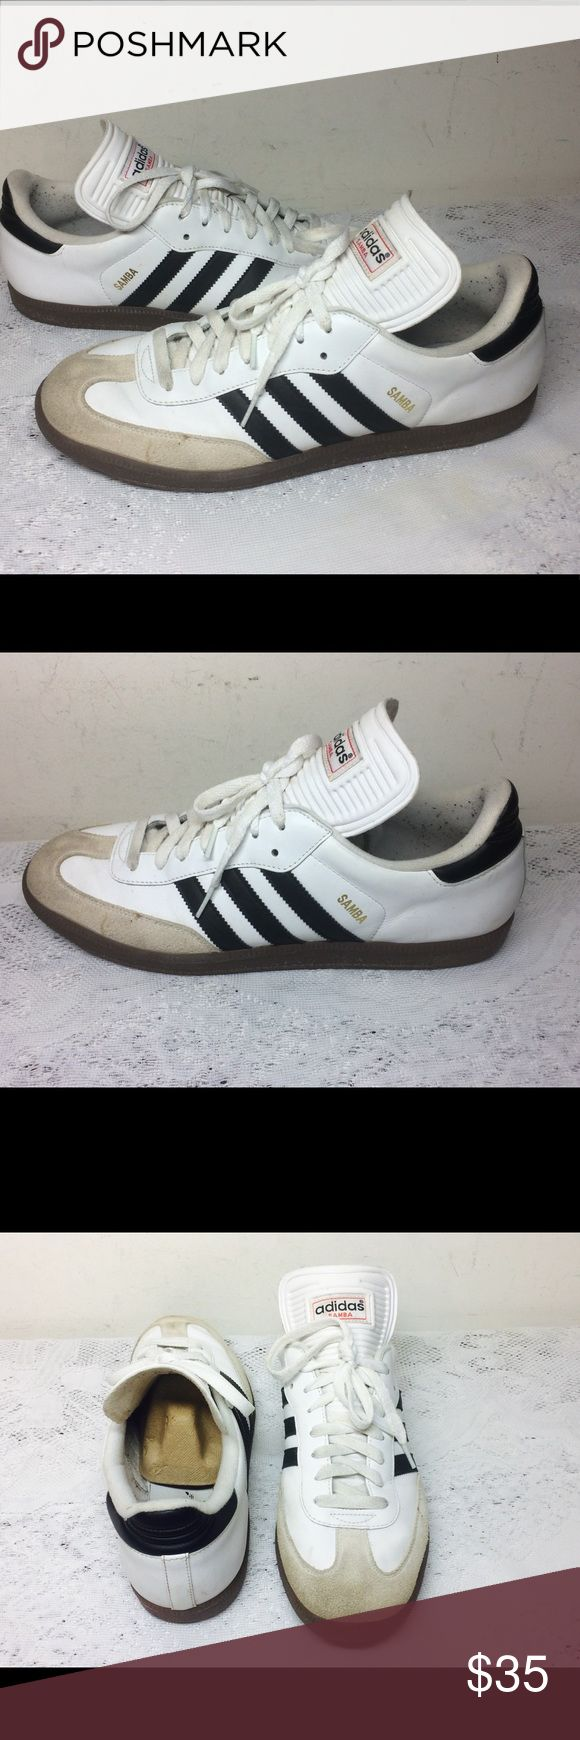 ADIDAS SAMBA CLASSIC SIZE 11.5 Excellent Used Condition, Minor Stain, Please See Pictures Below. Adidas Shoes Athletic Shoes